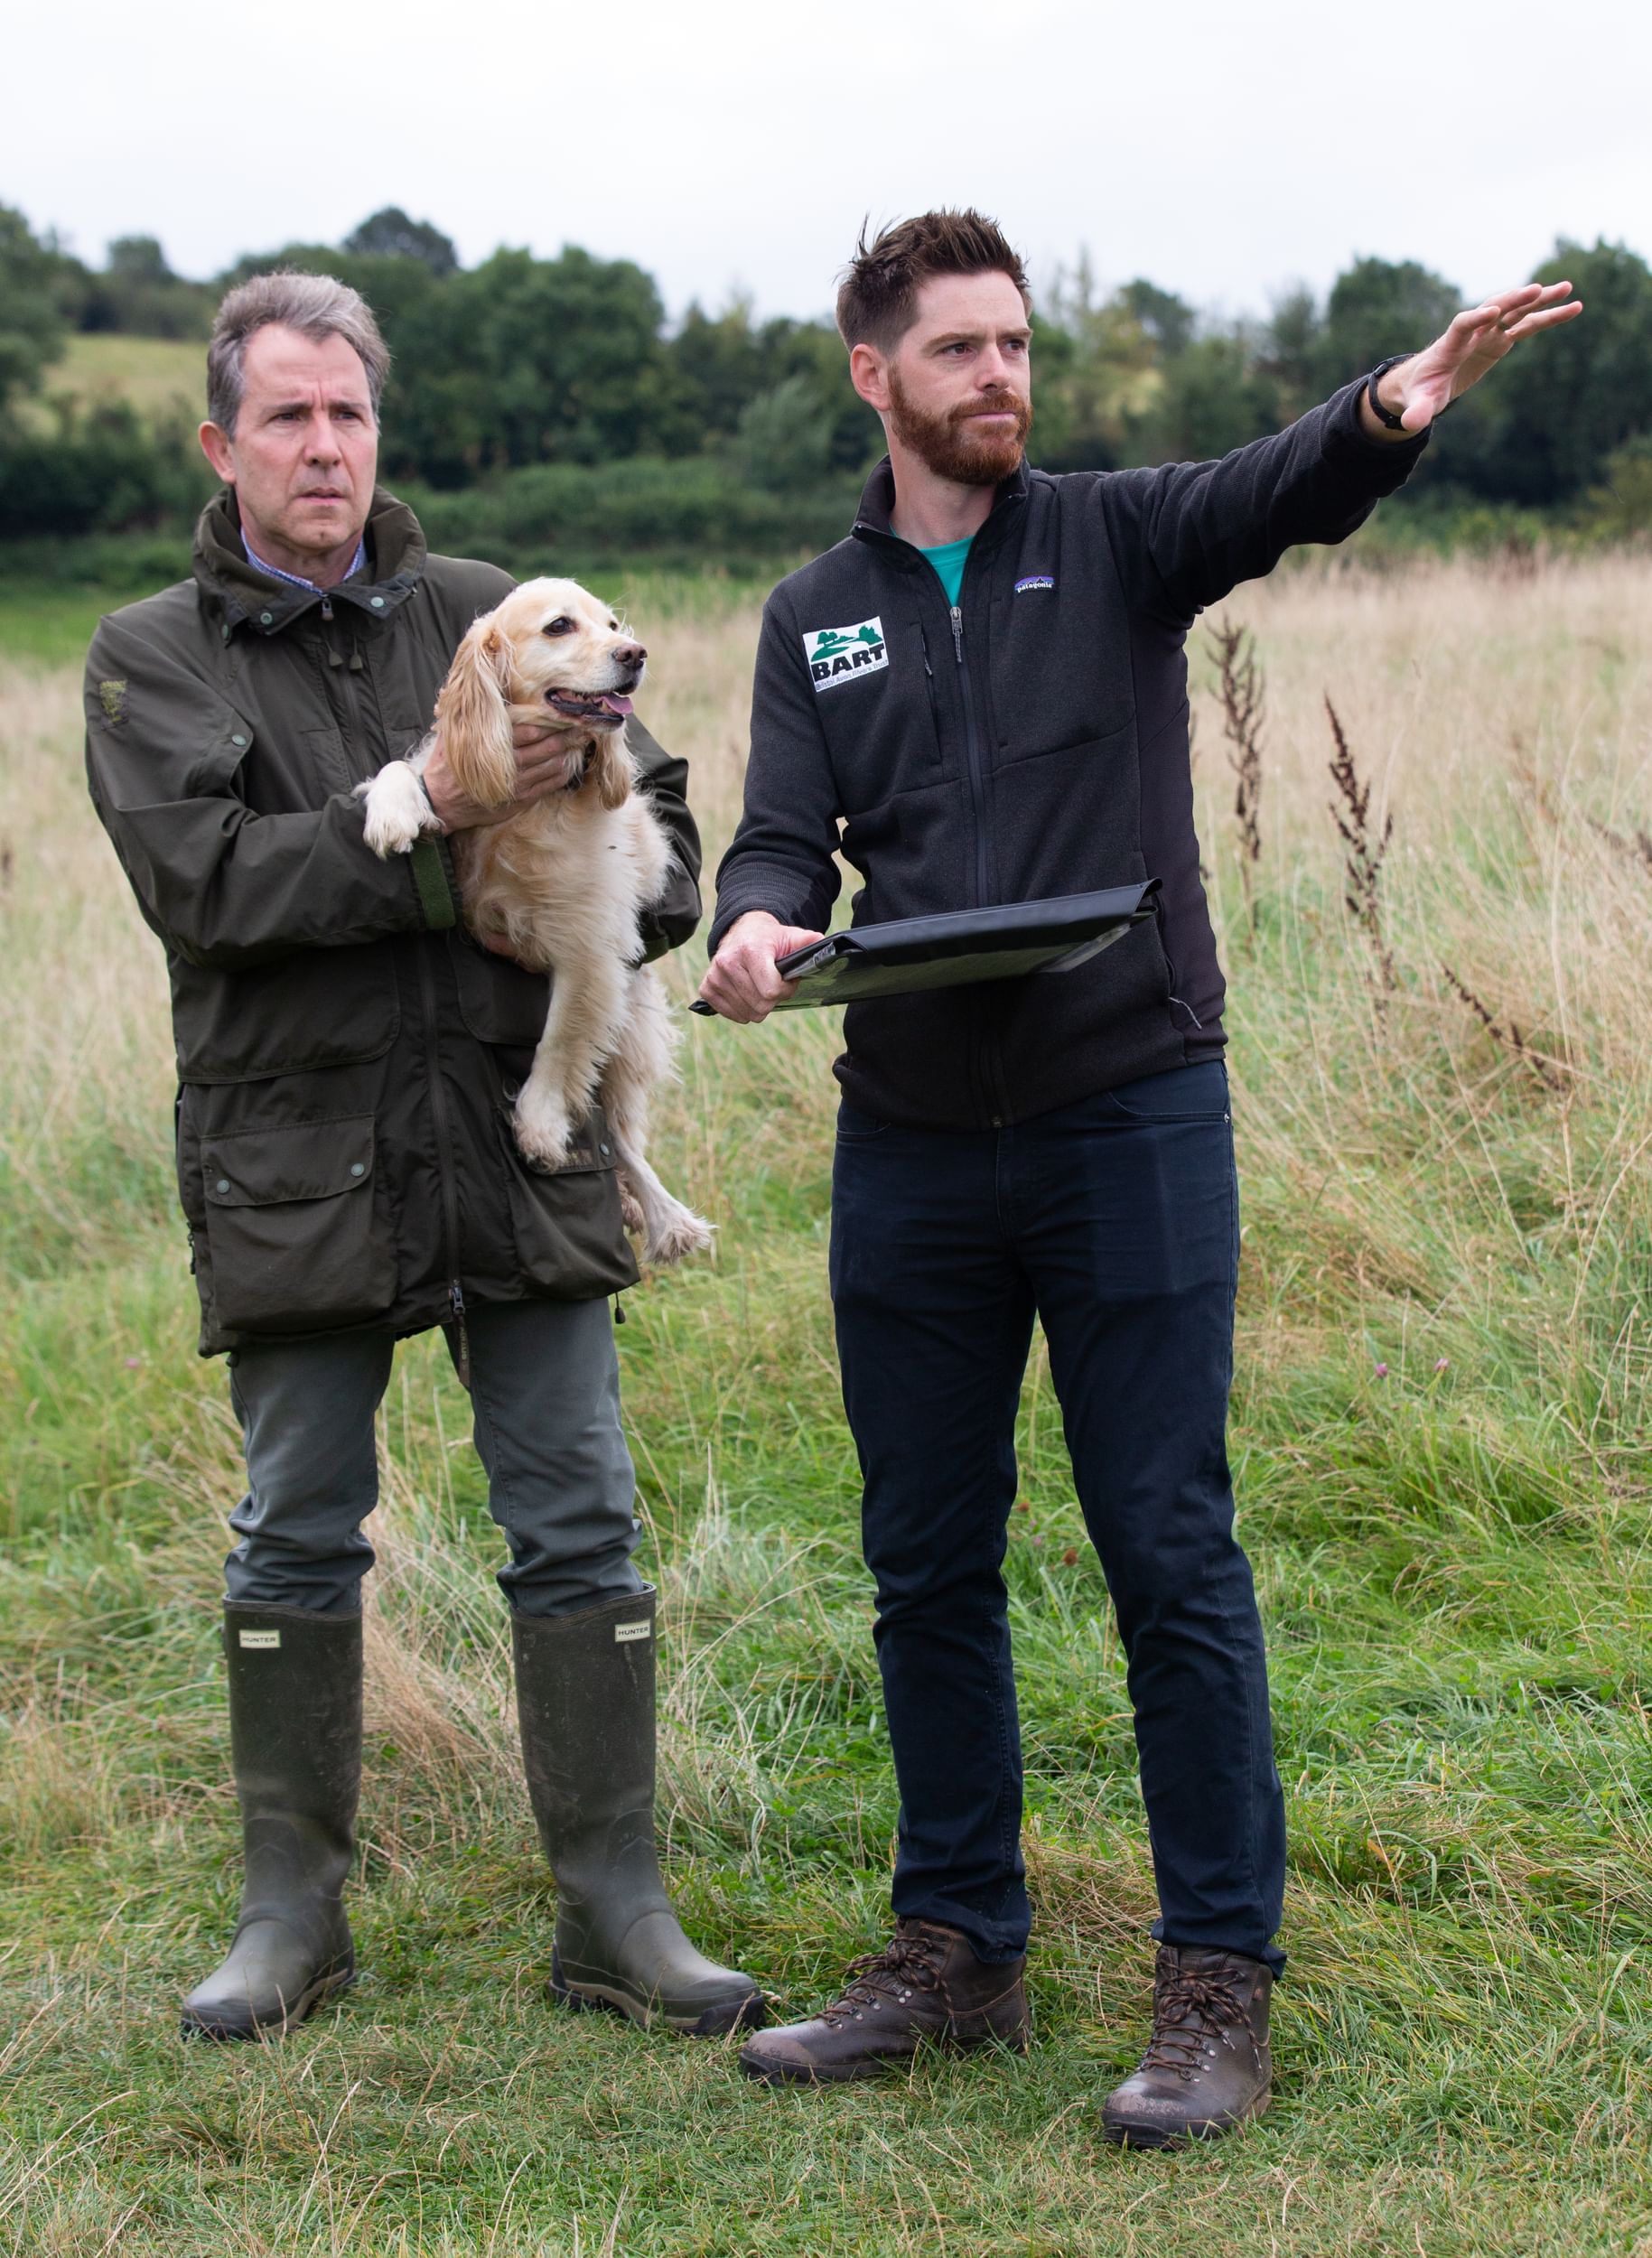 Dan Norris with his dog and a man in a field